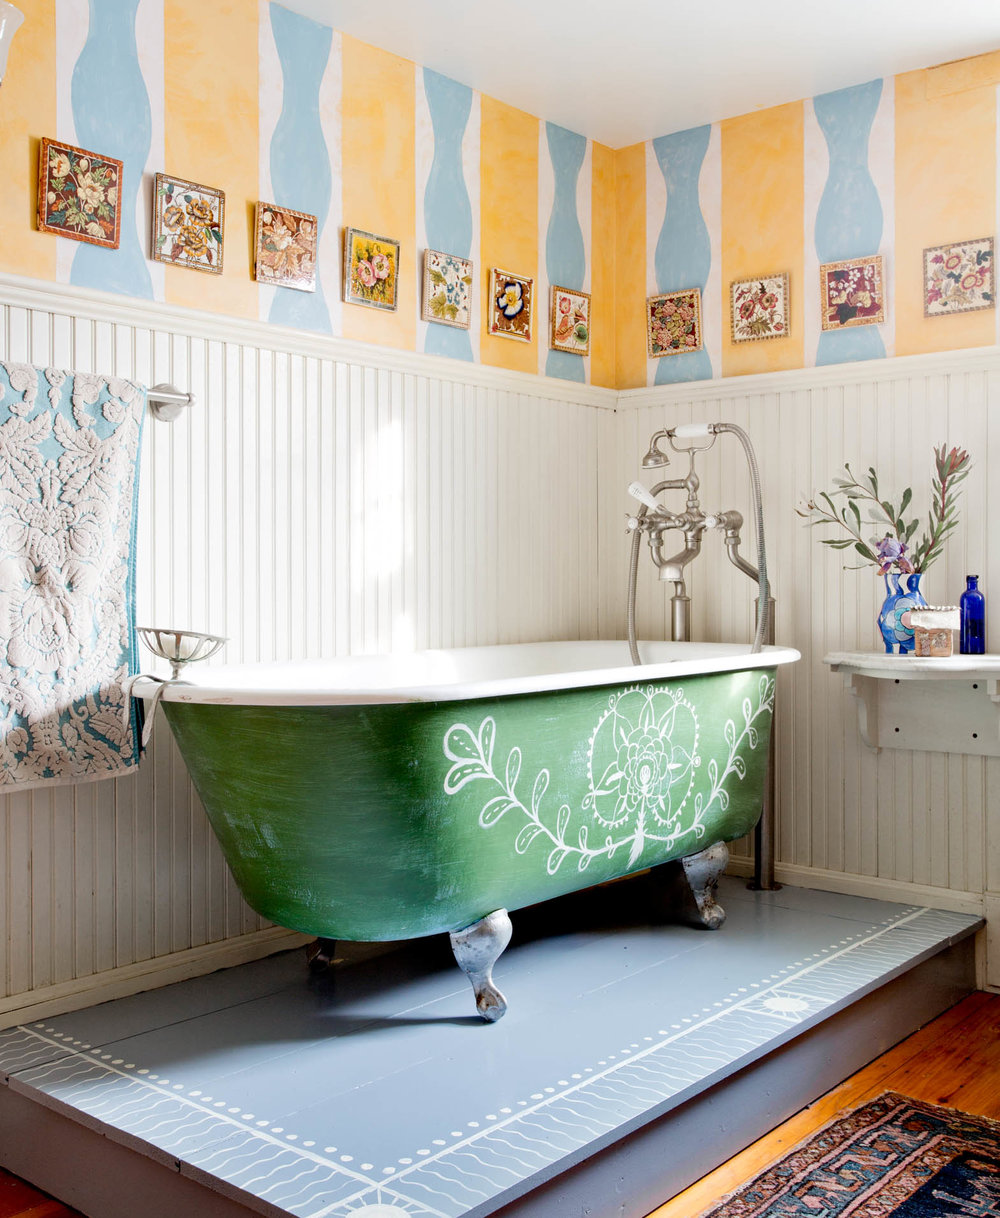 country-colorful-bathroom-claw-foot-tub.jpg